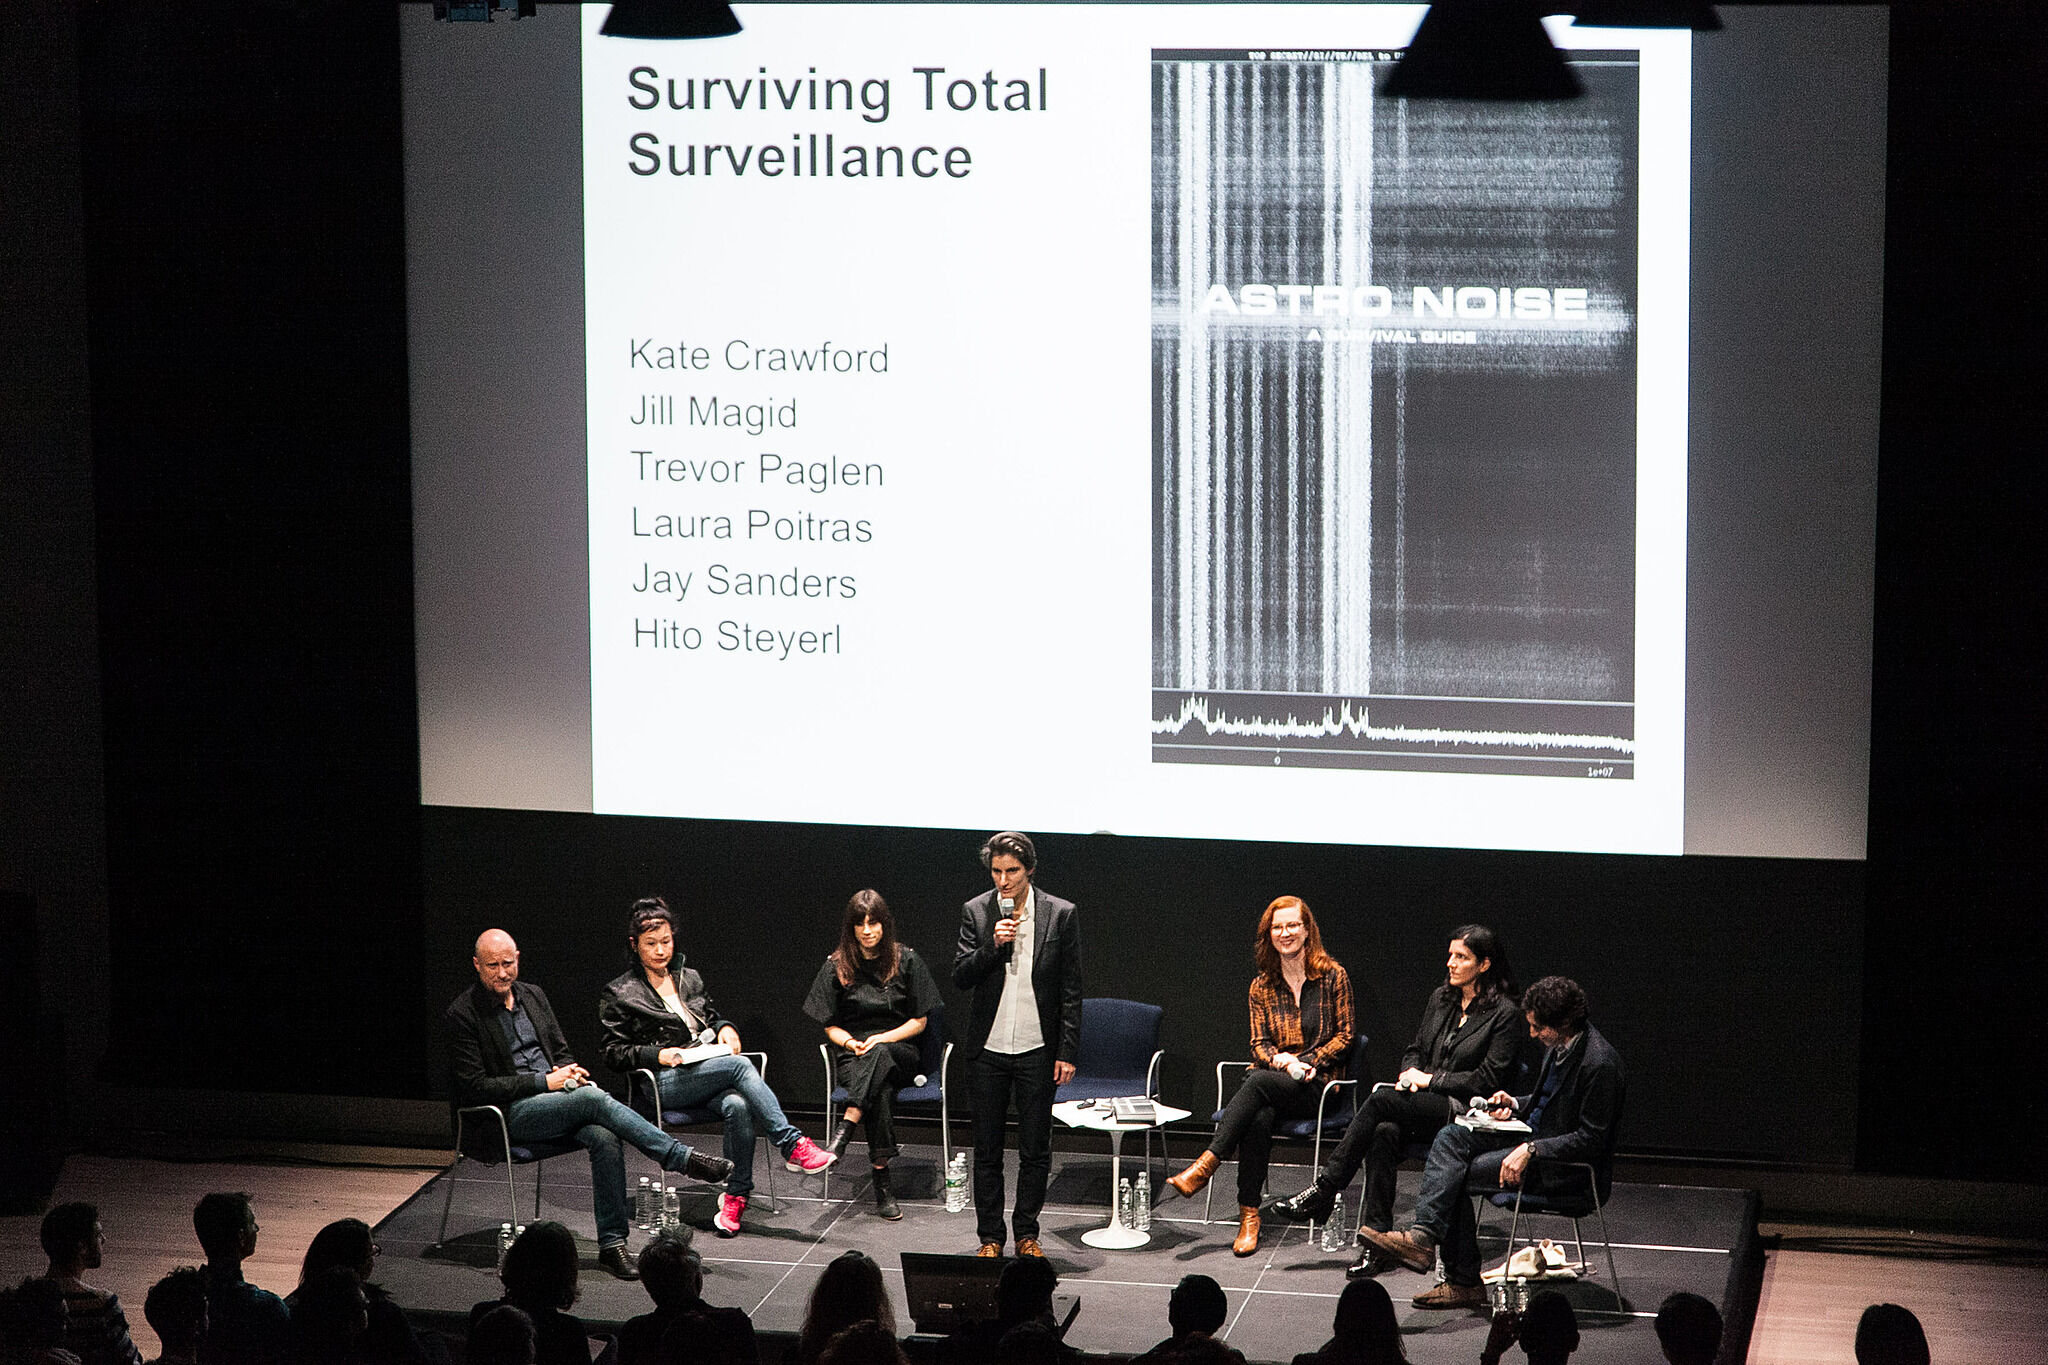 A panel of speakers engage with the audience